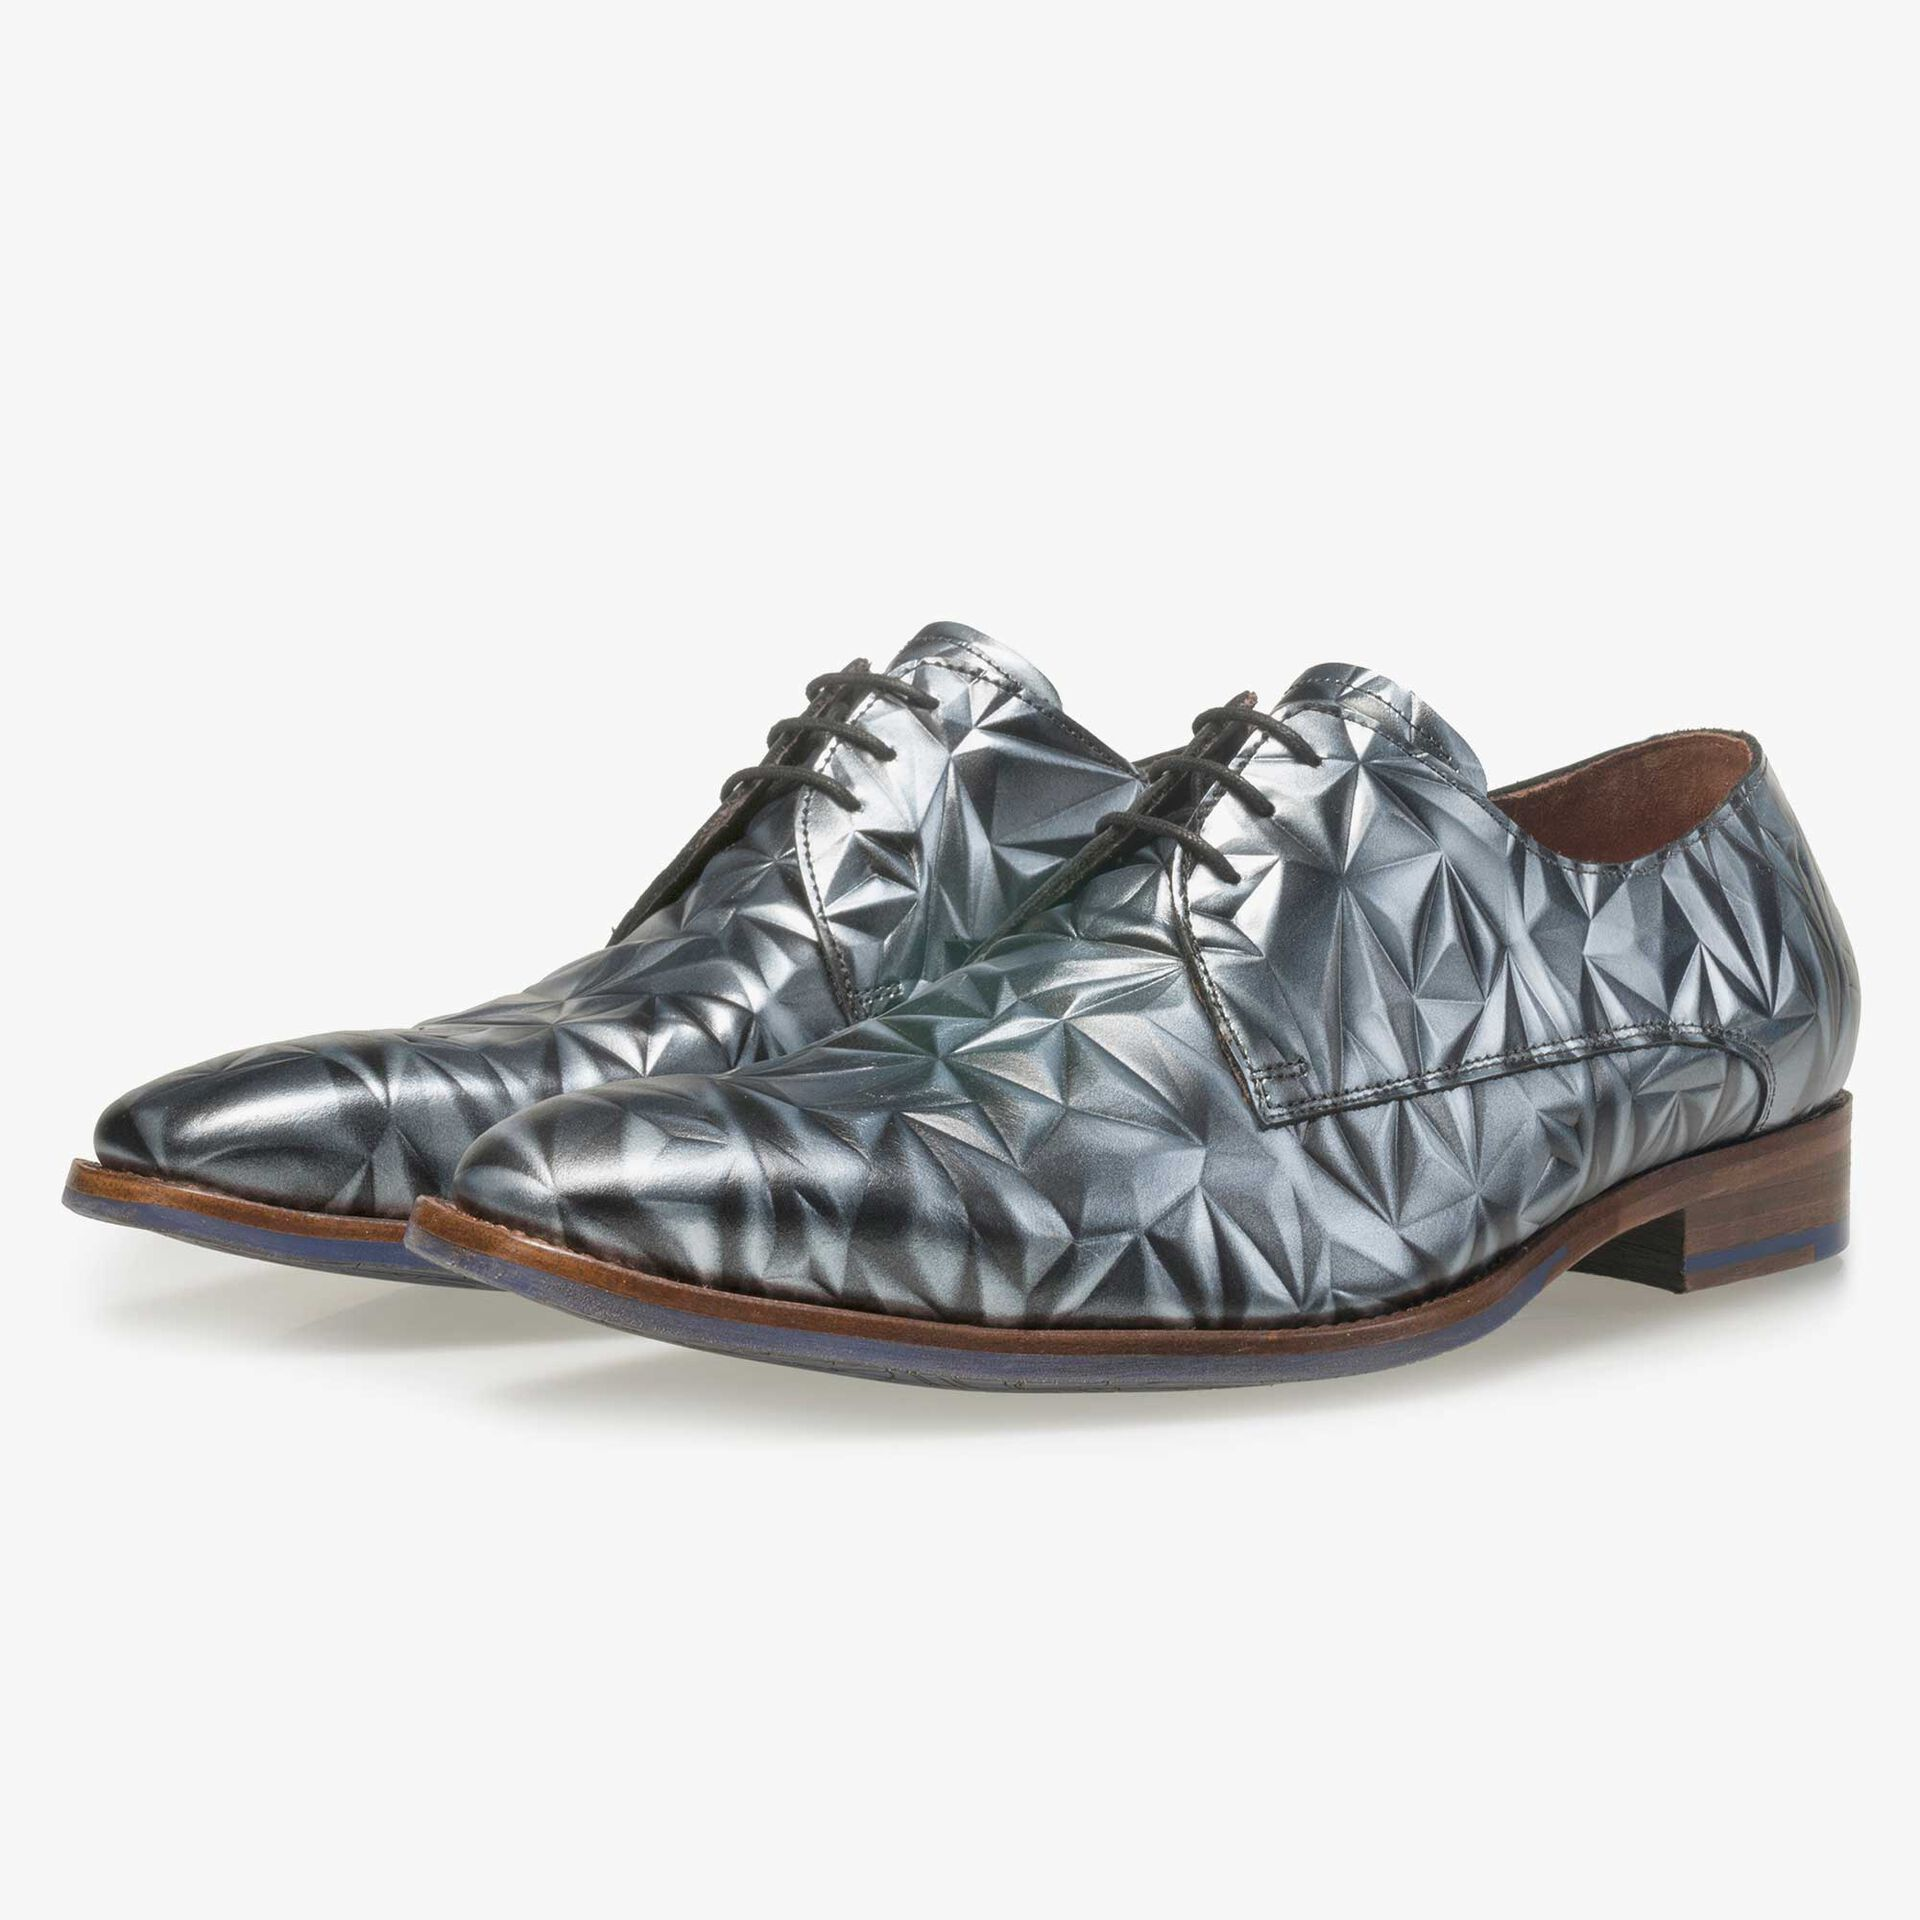 Floris van Bommel men's grey leather lace shoe finished with a silver 3D effect